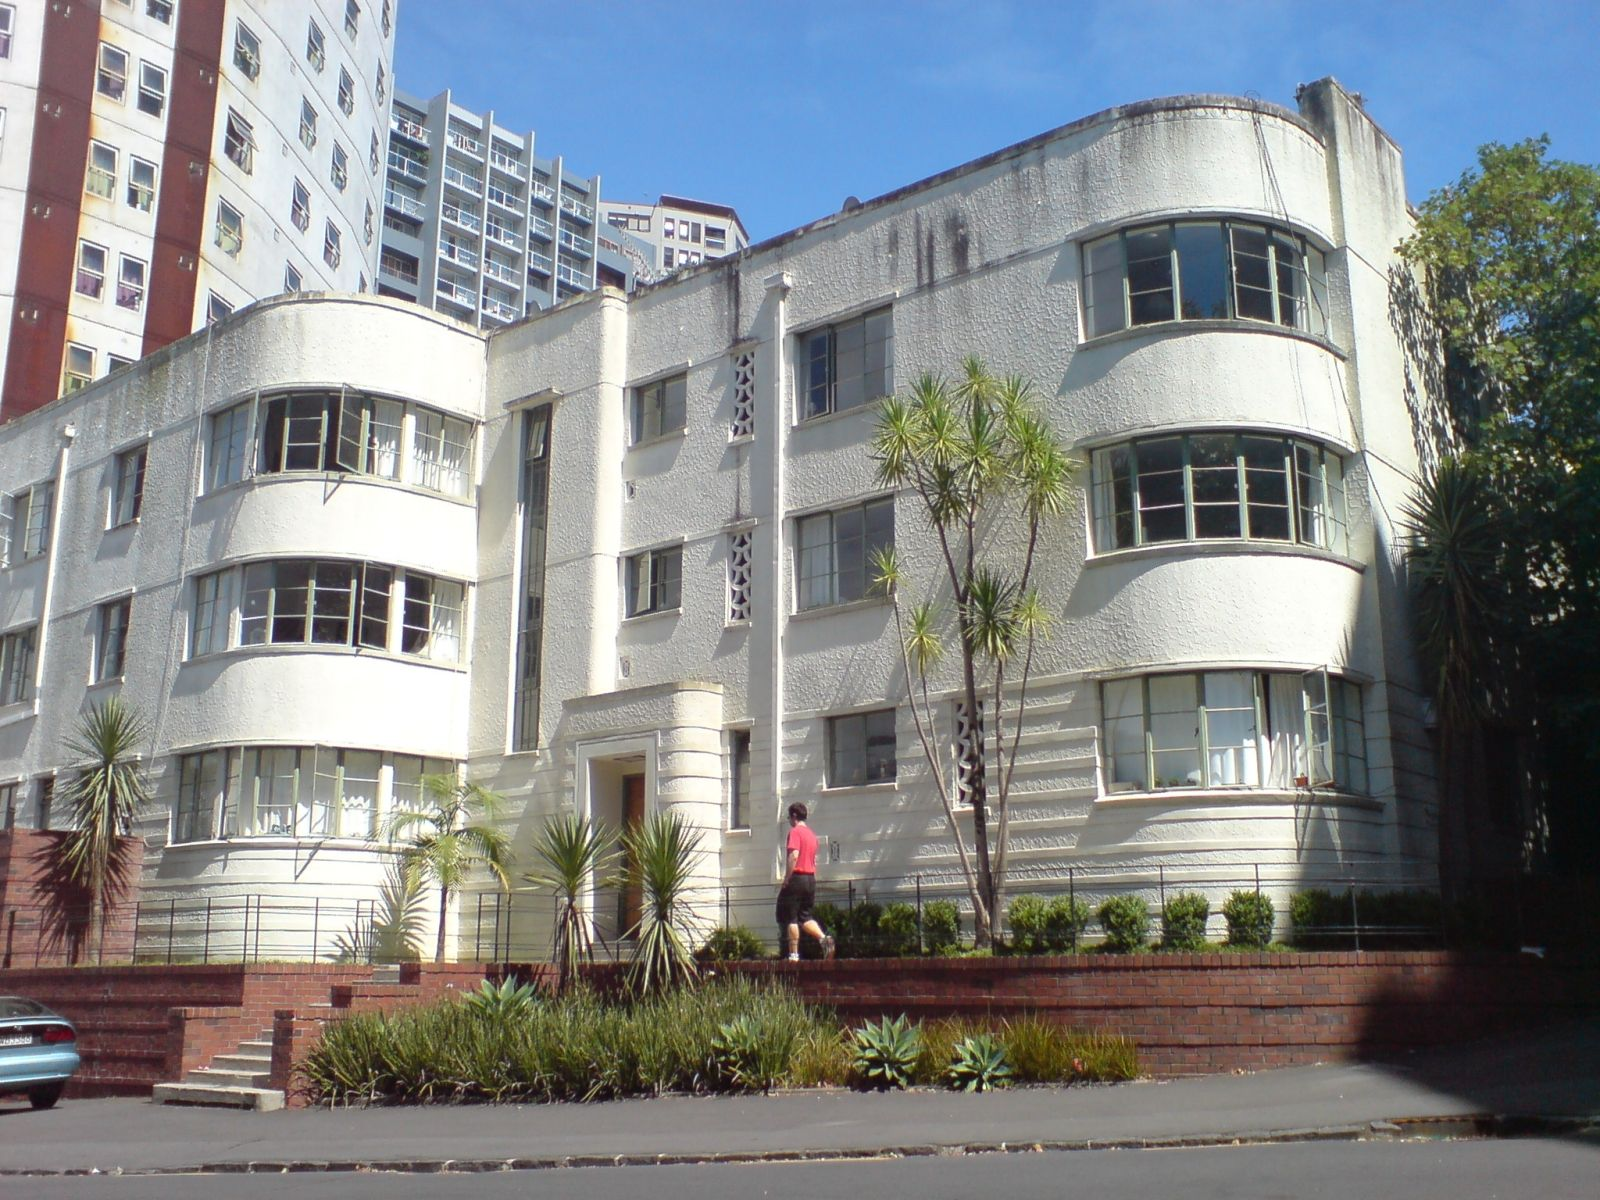 Art deco style architecture - The Cintra Flats Art Deco Apartment Building Auckland New Zealand